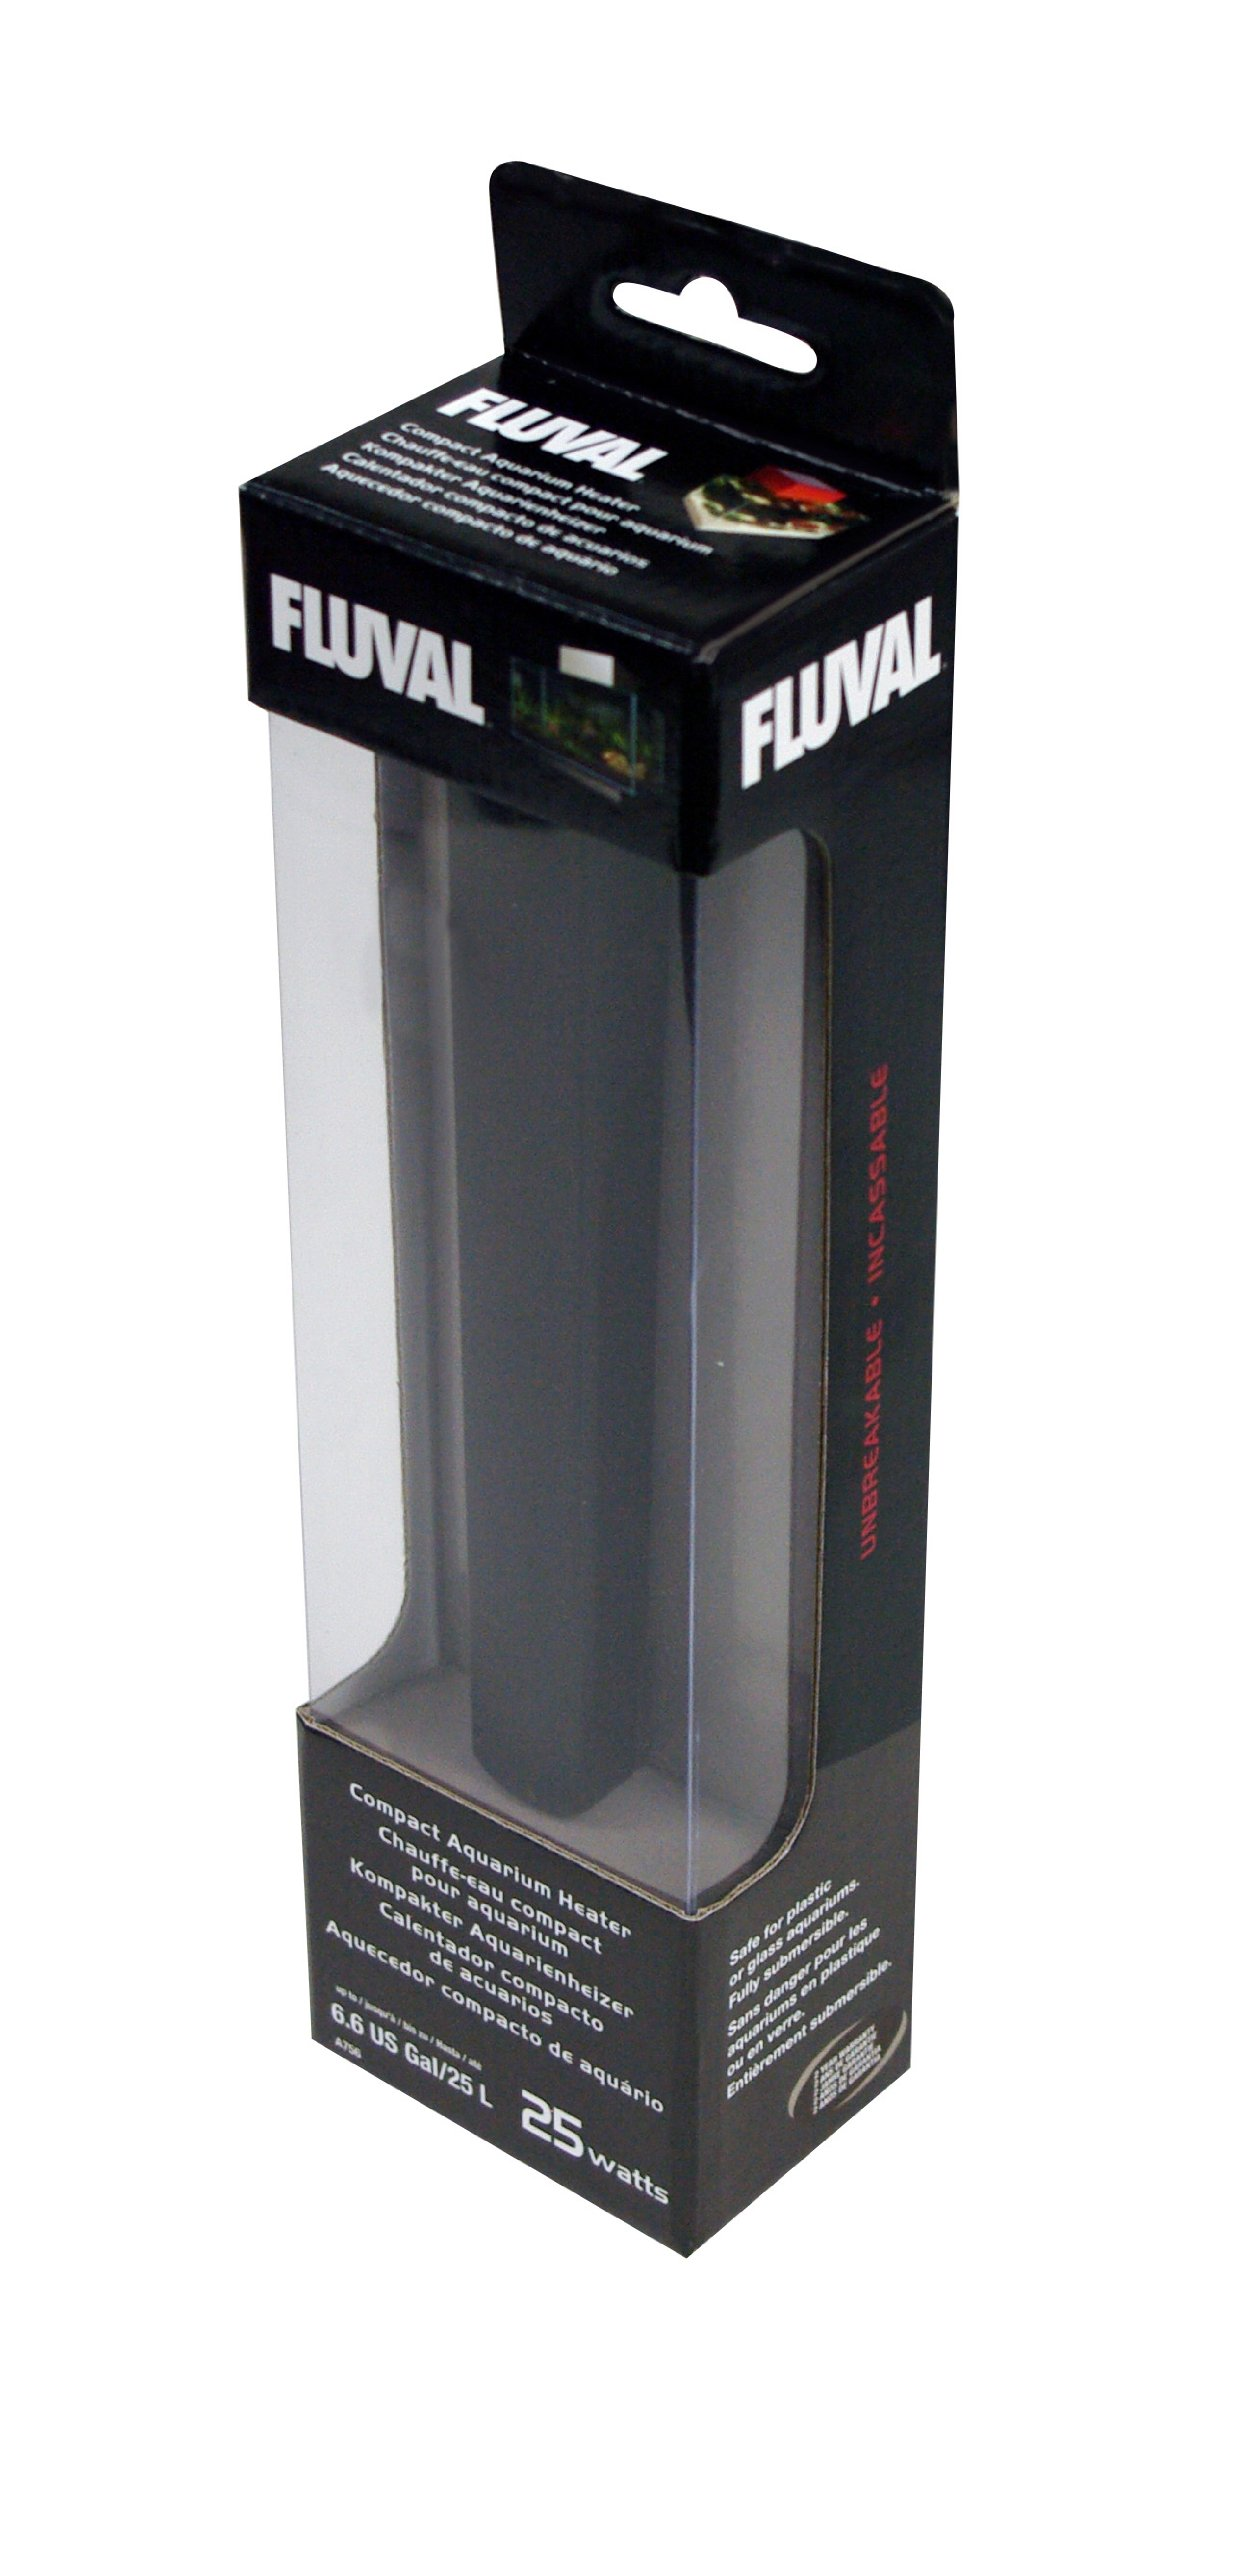 Fluval Edge Compact Aquarium Heater (25 w) by Fluval (Image #2)